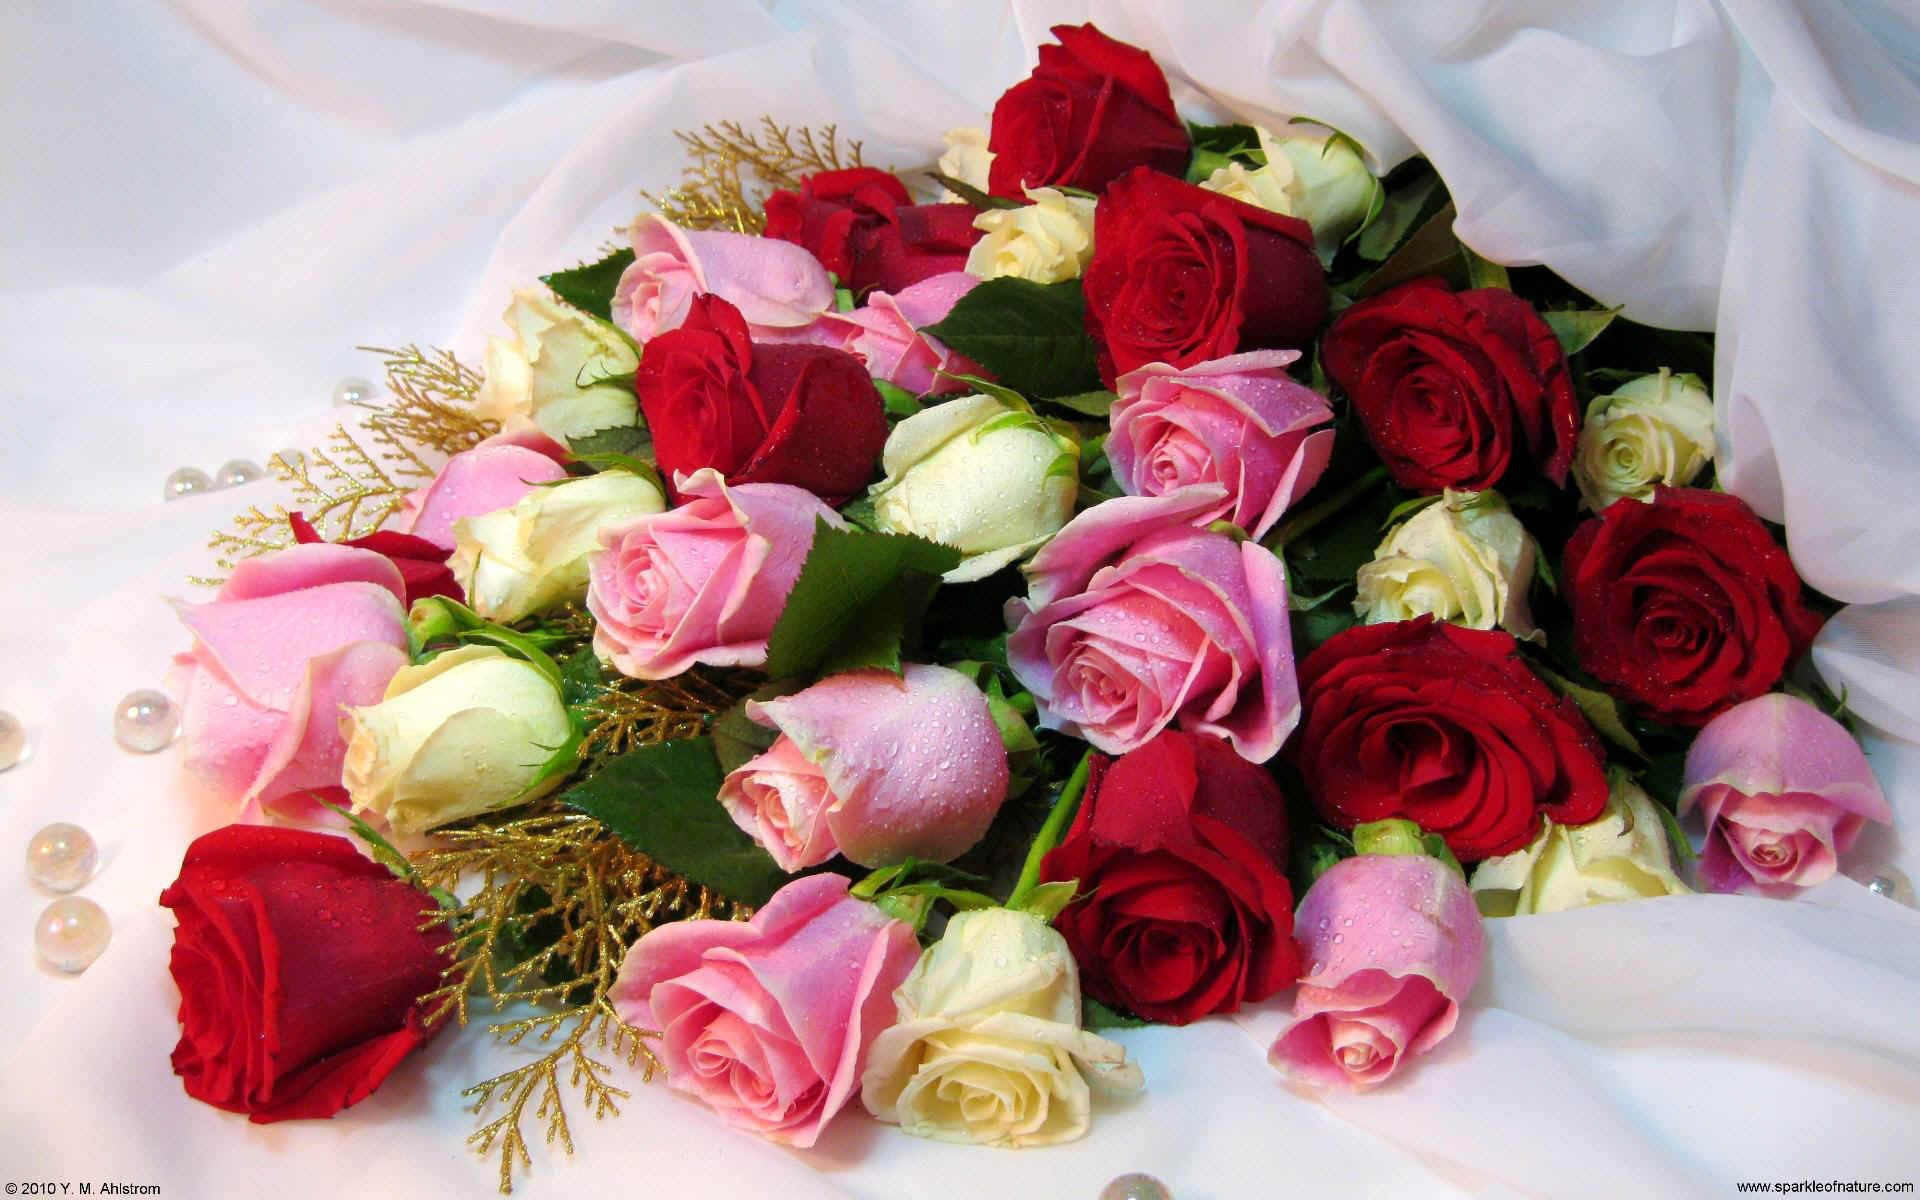 Images of rose bouquets google search flowers pinterest rose images of rose bouquets google search izmirmasajfo